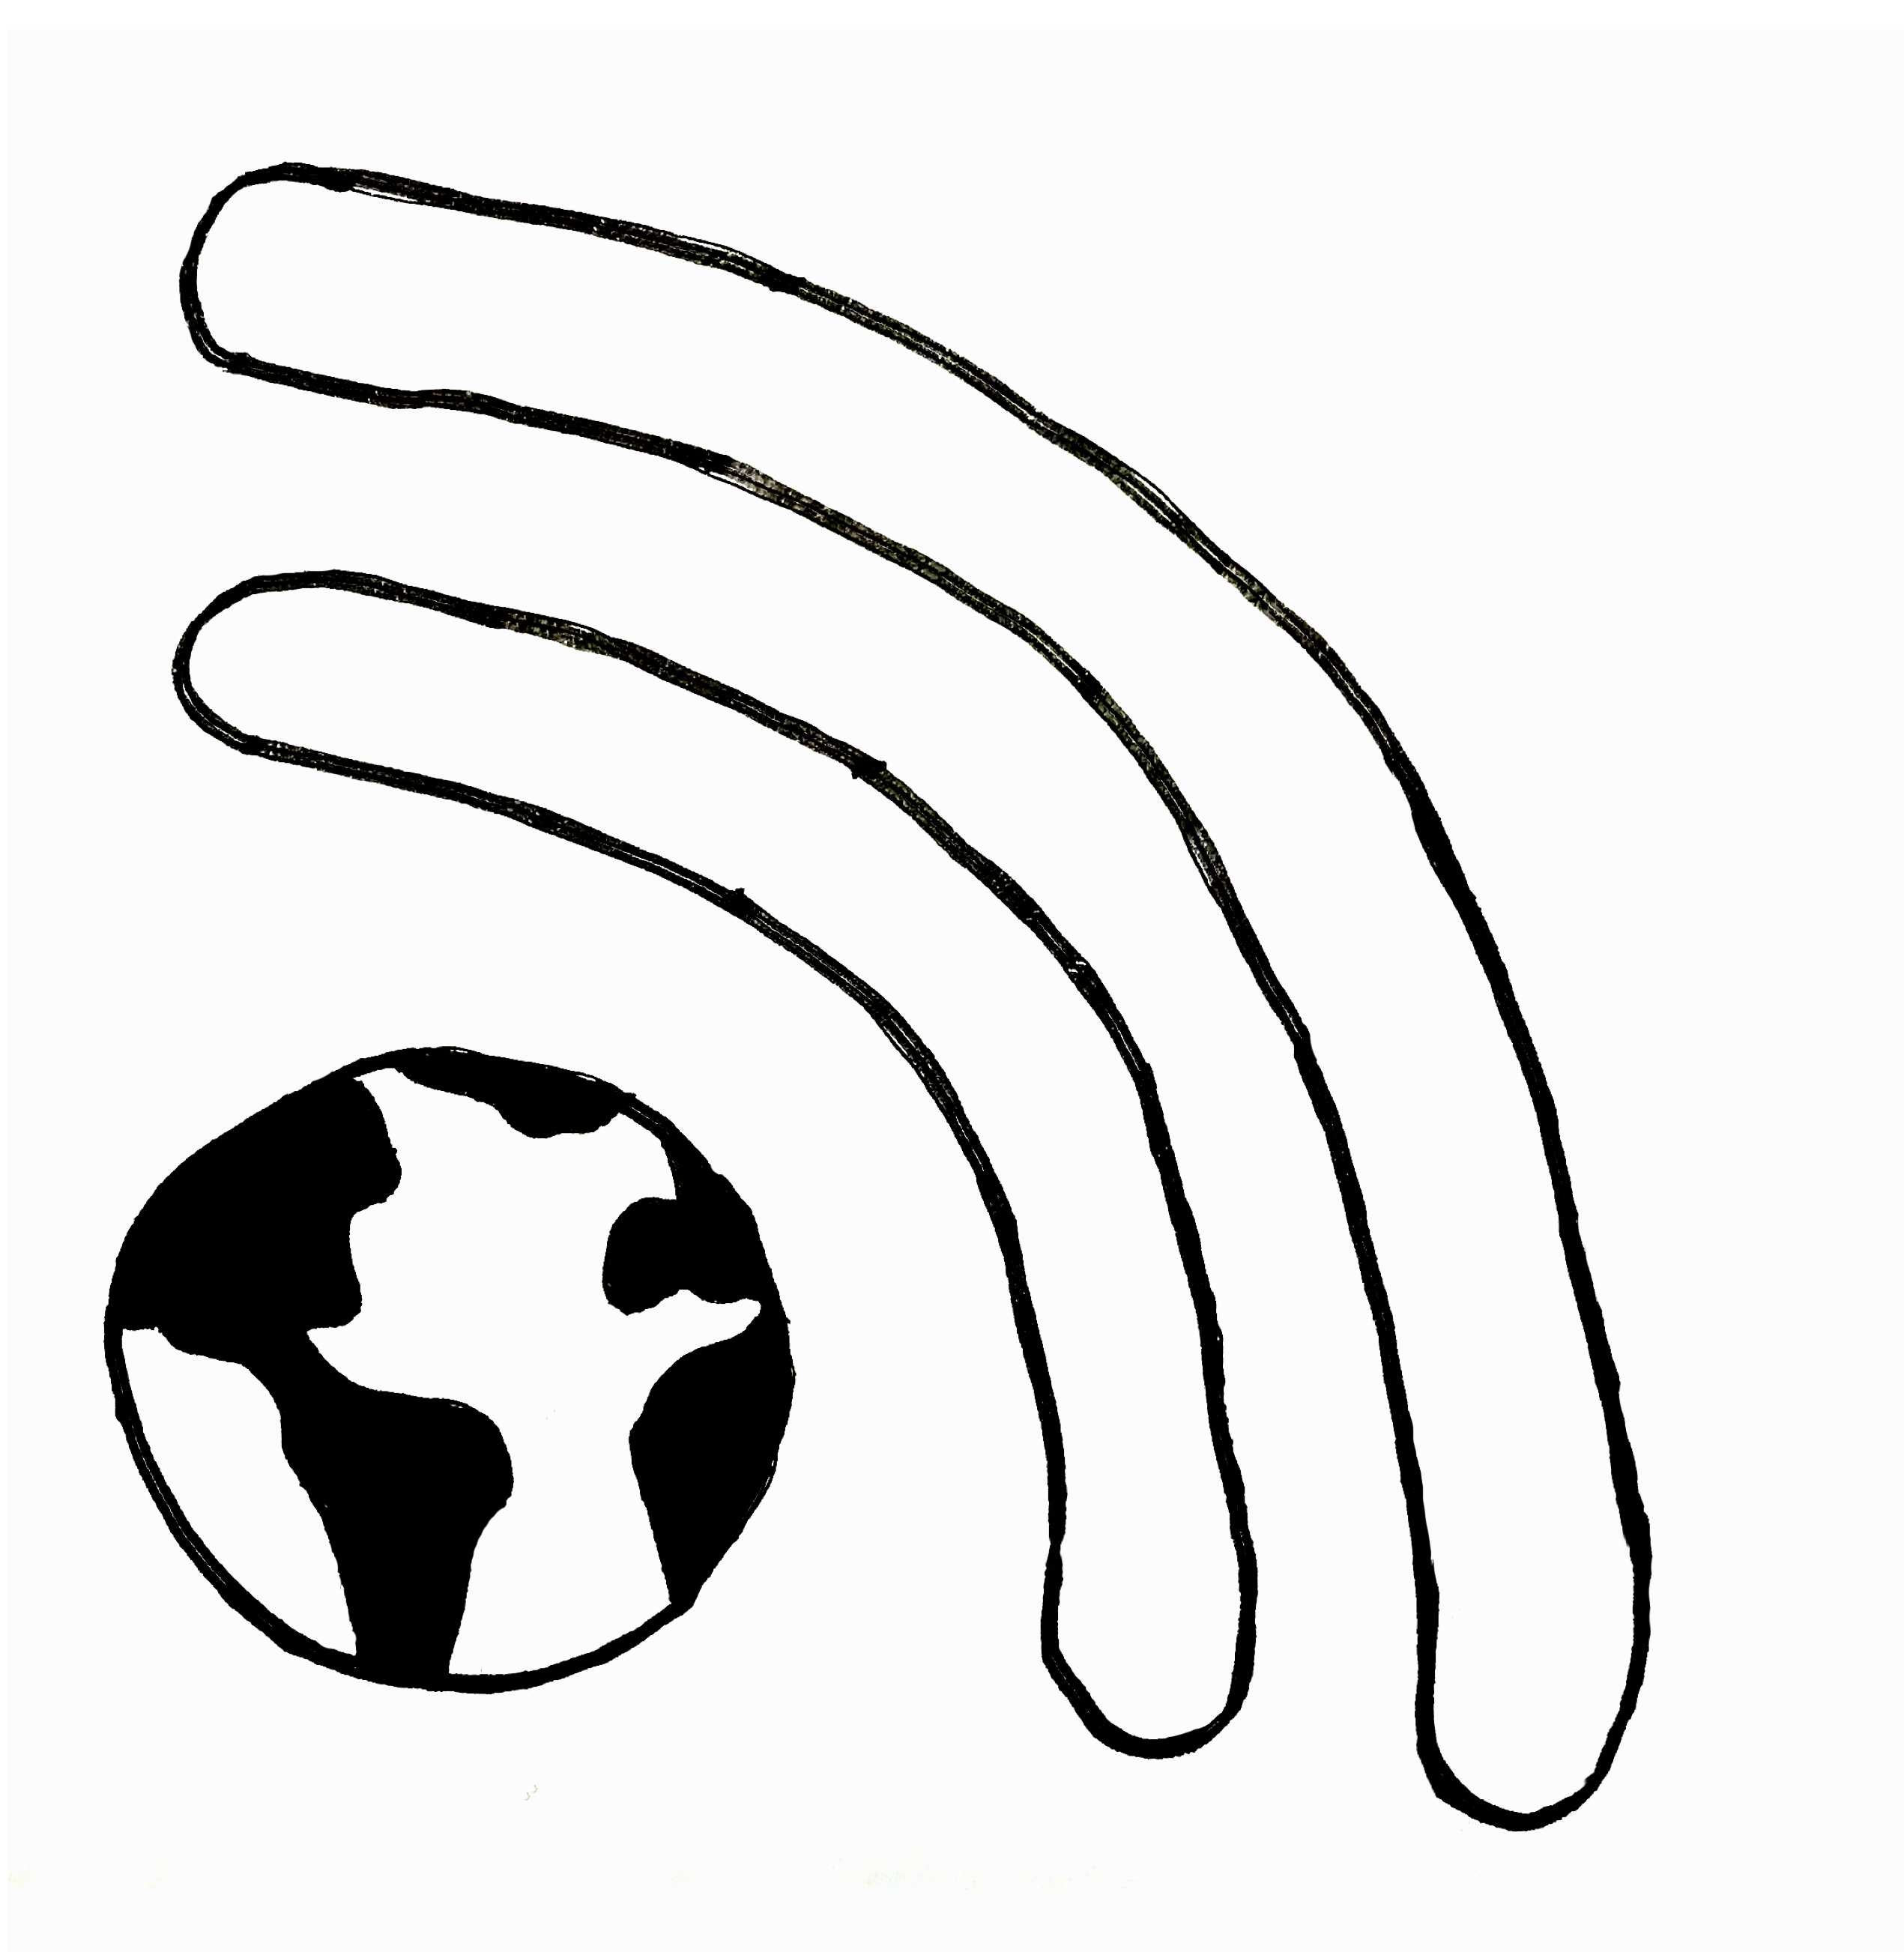 An illustration of Earth with WiFi signals shooting out of it.